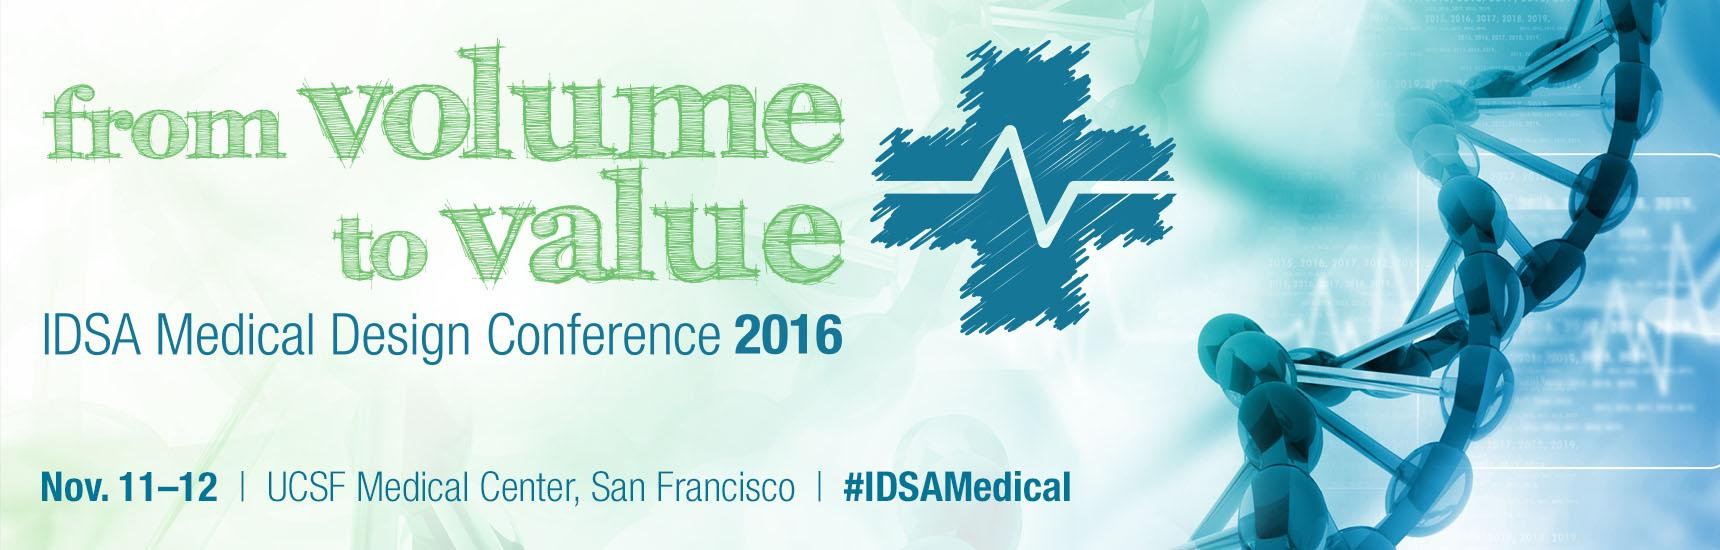 idsa medical design conference 2016 from volume to value